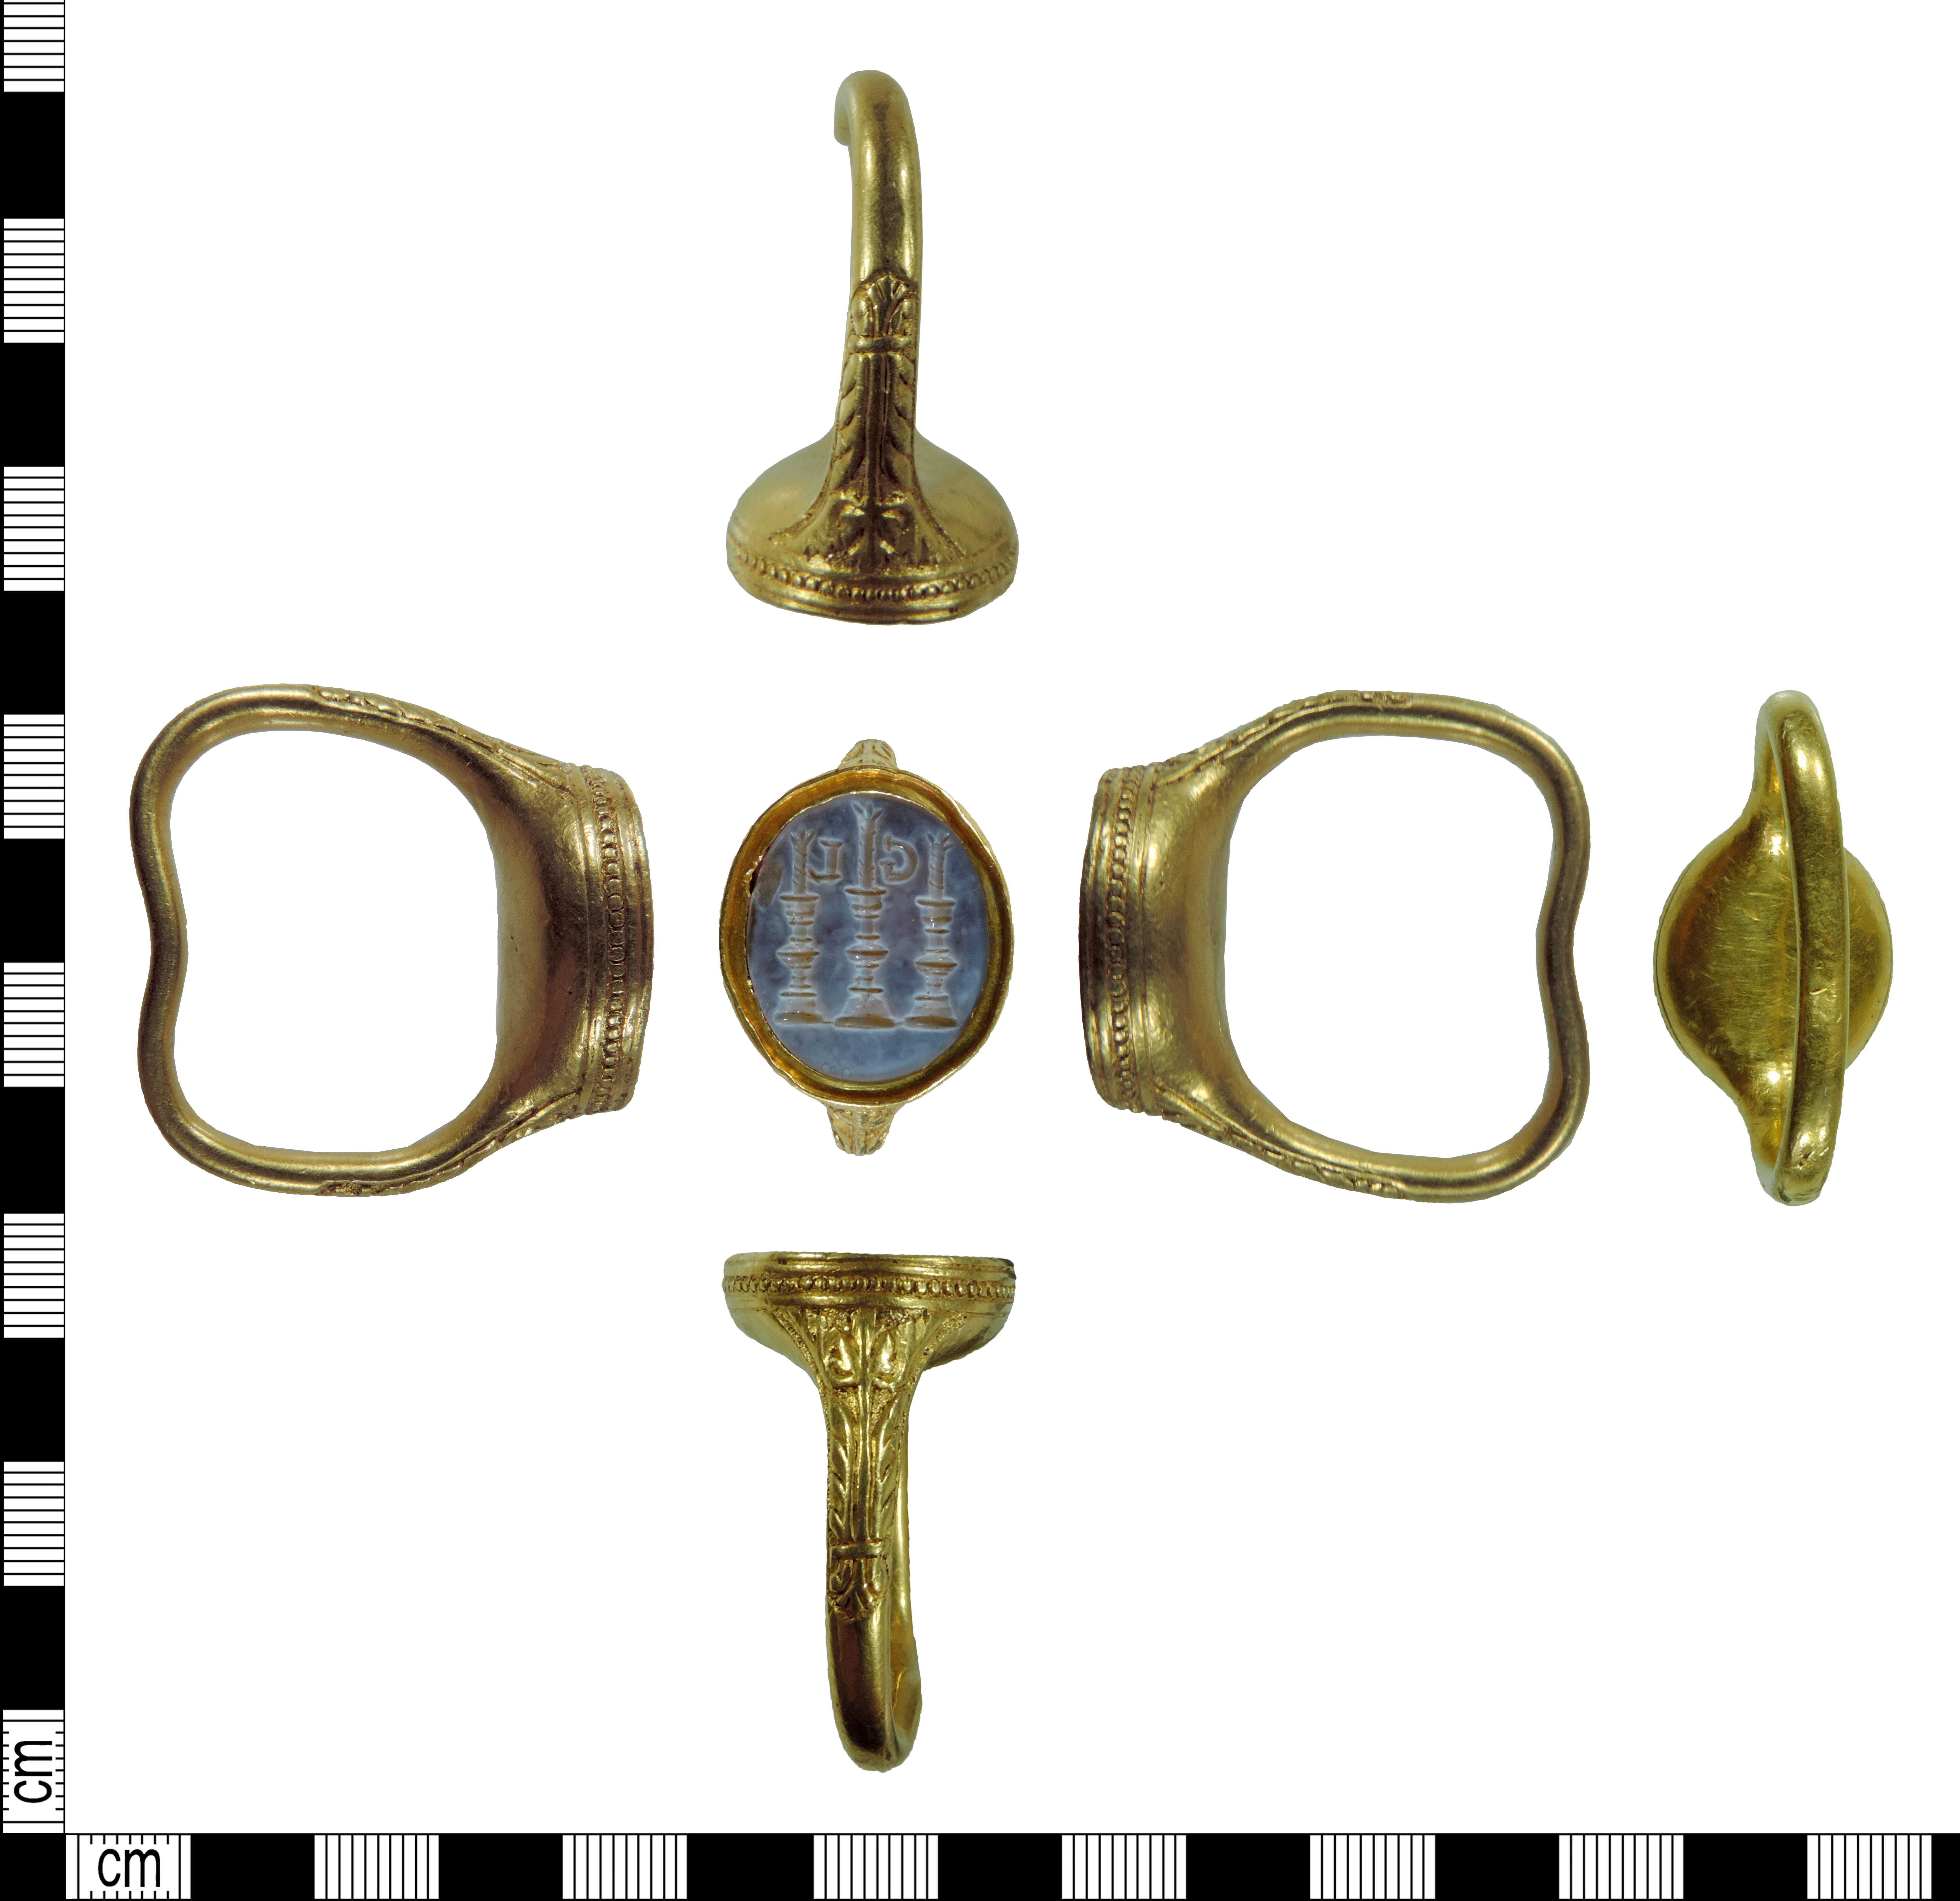 A Post medieval gold signet ring, with three candlesticks and two initials on the device.